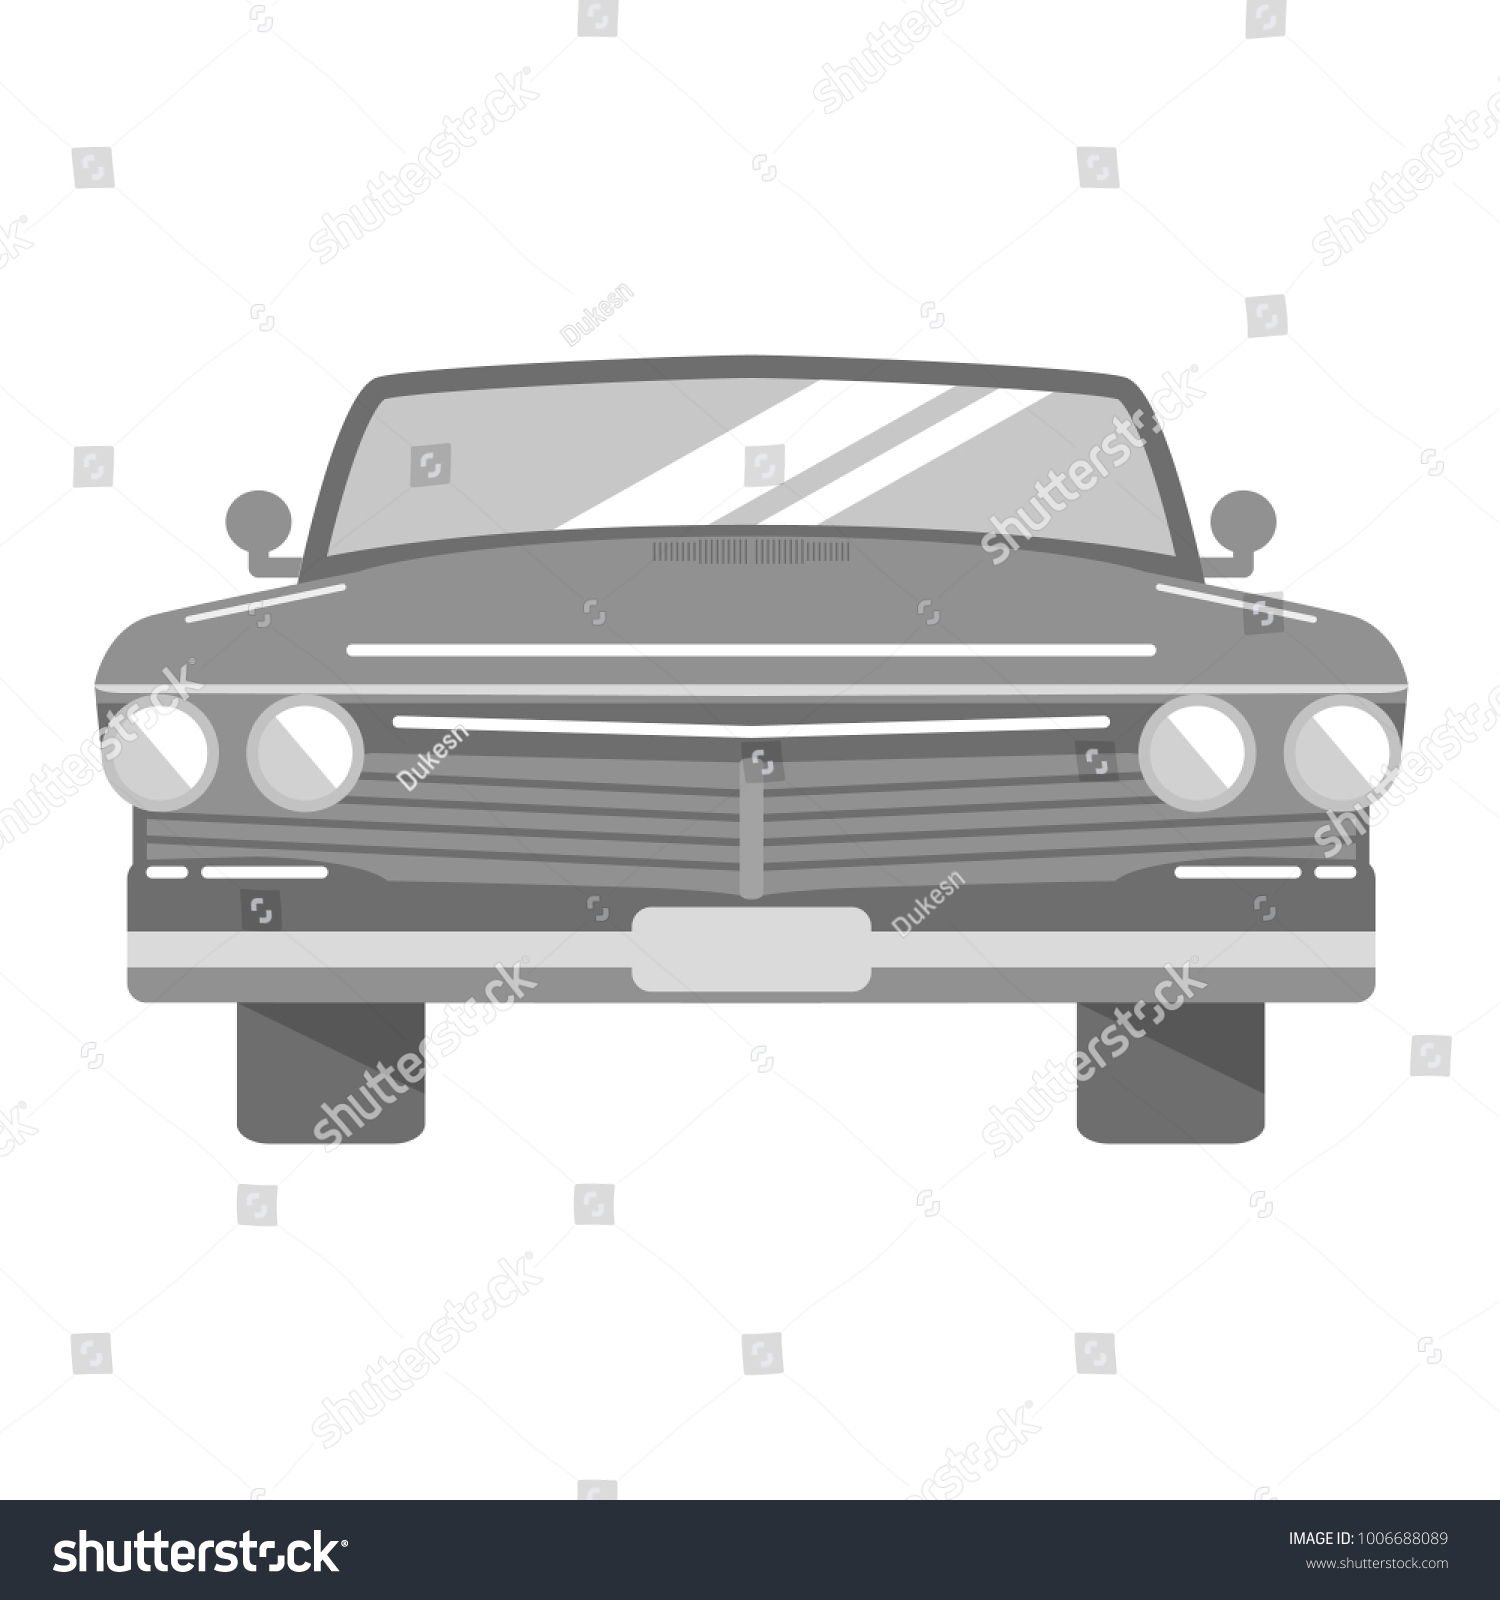 Retro Vintage Car Front View On Stock Vector 1006688089 - Shutterstock